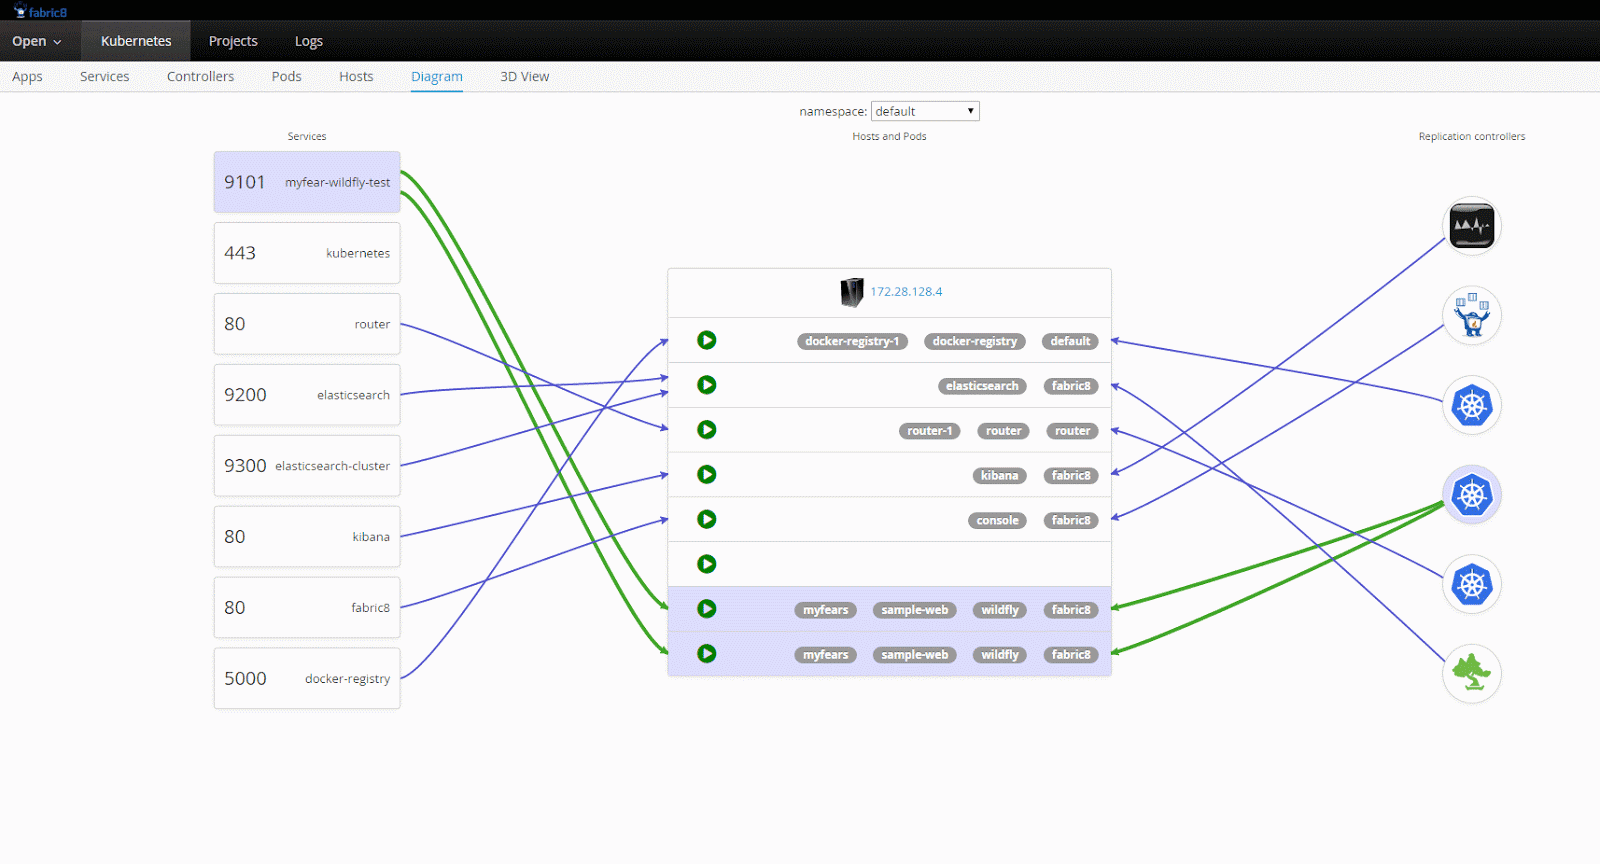 Jsf Architecture Diagram Pioneer Premier Deh P400ub Wiring Running Wildfly On Kubernetes Windows Fabric8